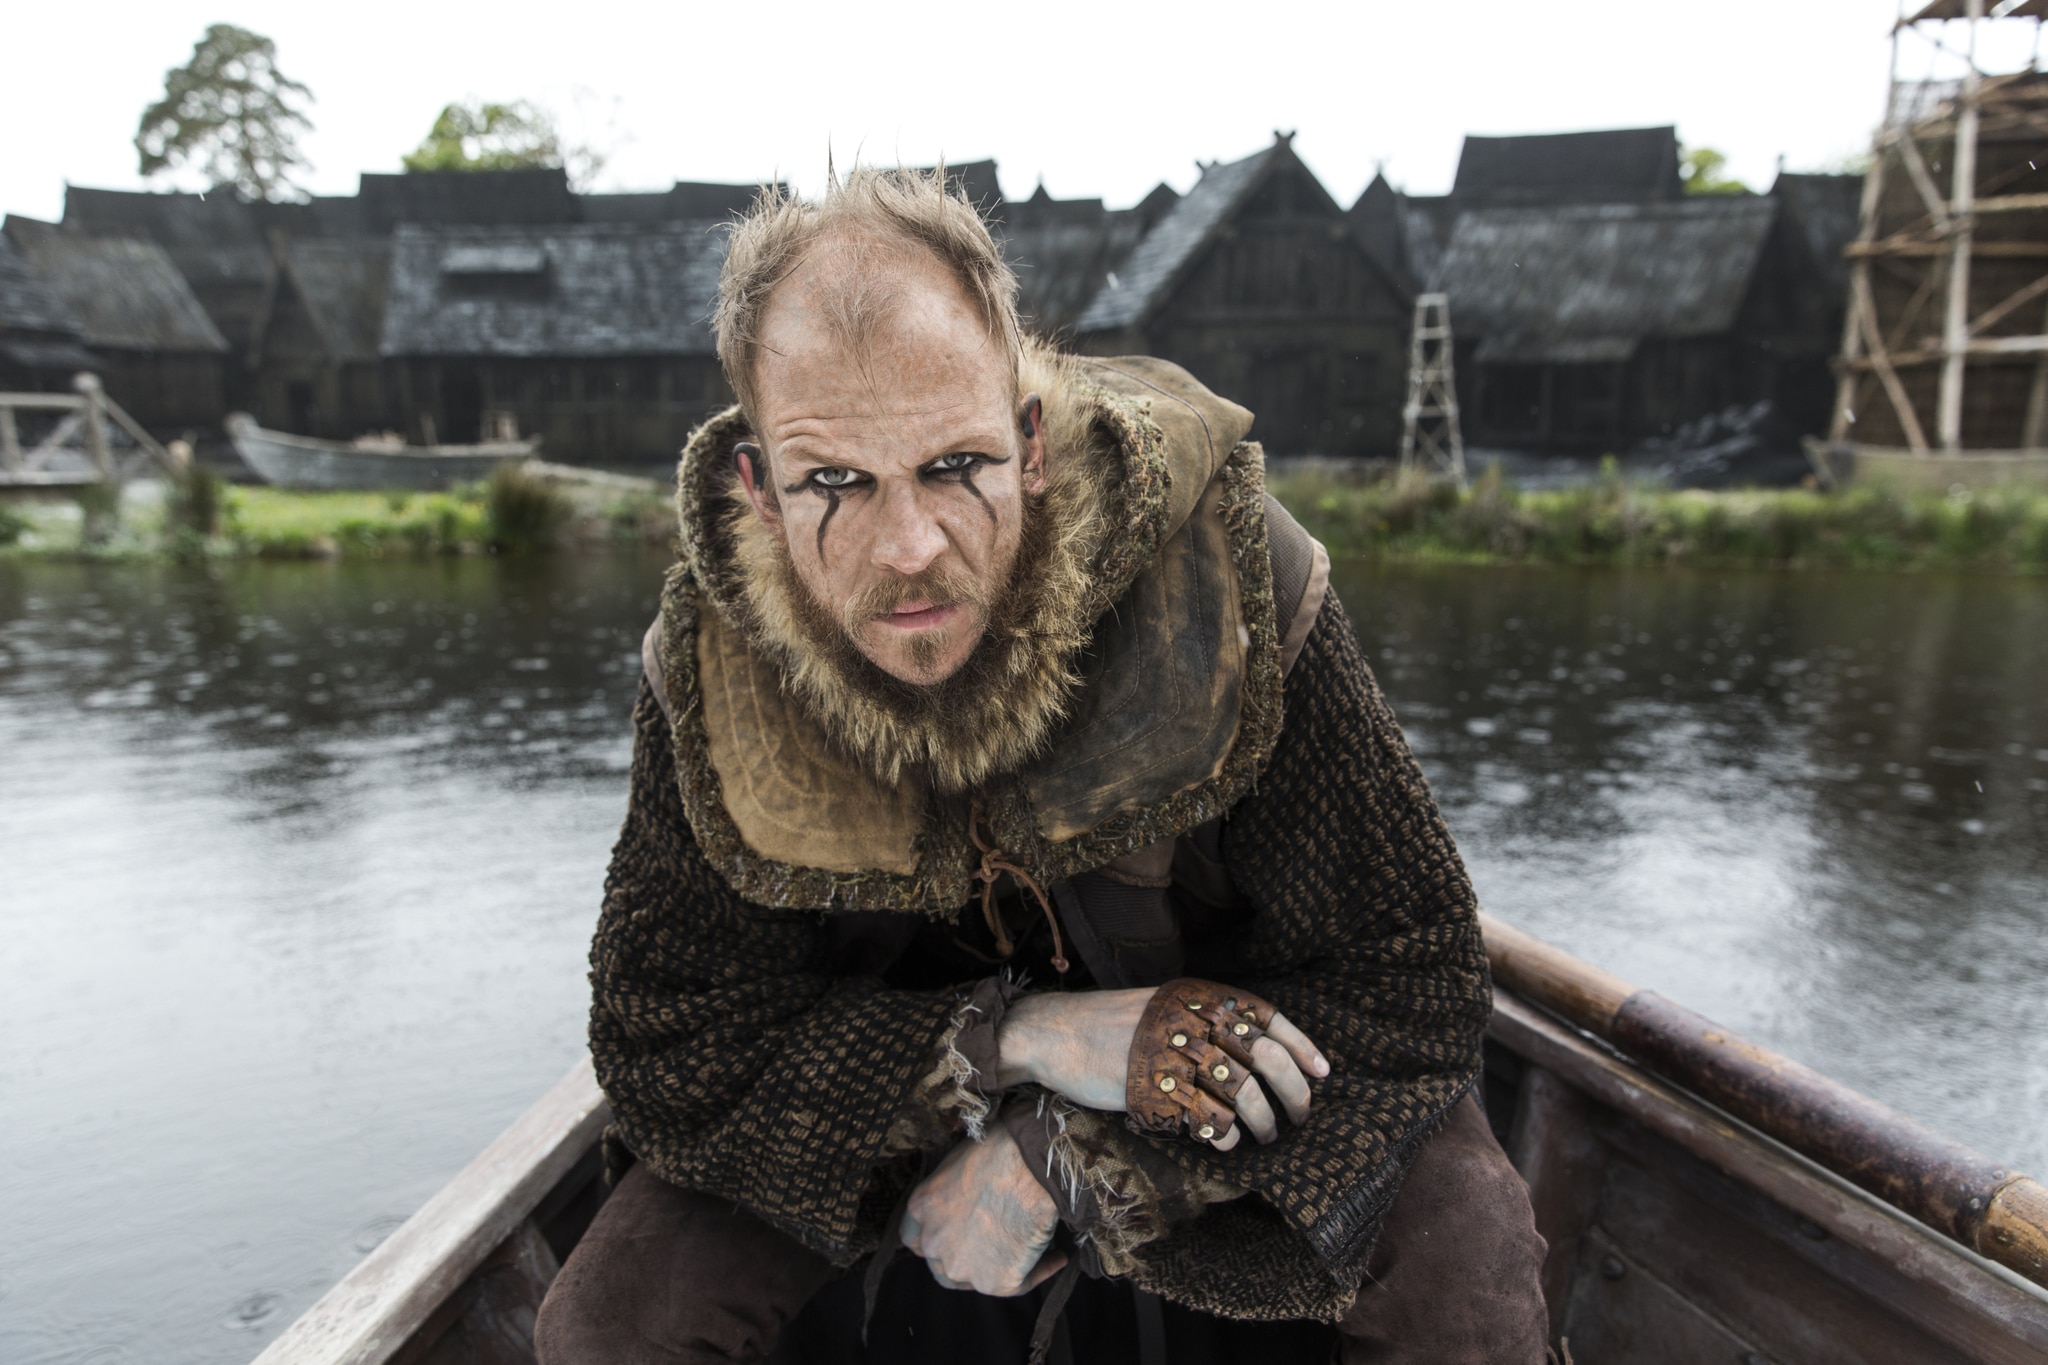 Vikings Floki © 2016 Metro-Goldwyn-Mayer Studios Inc.